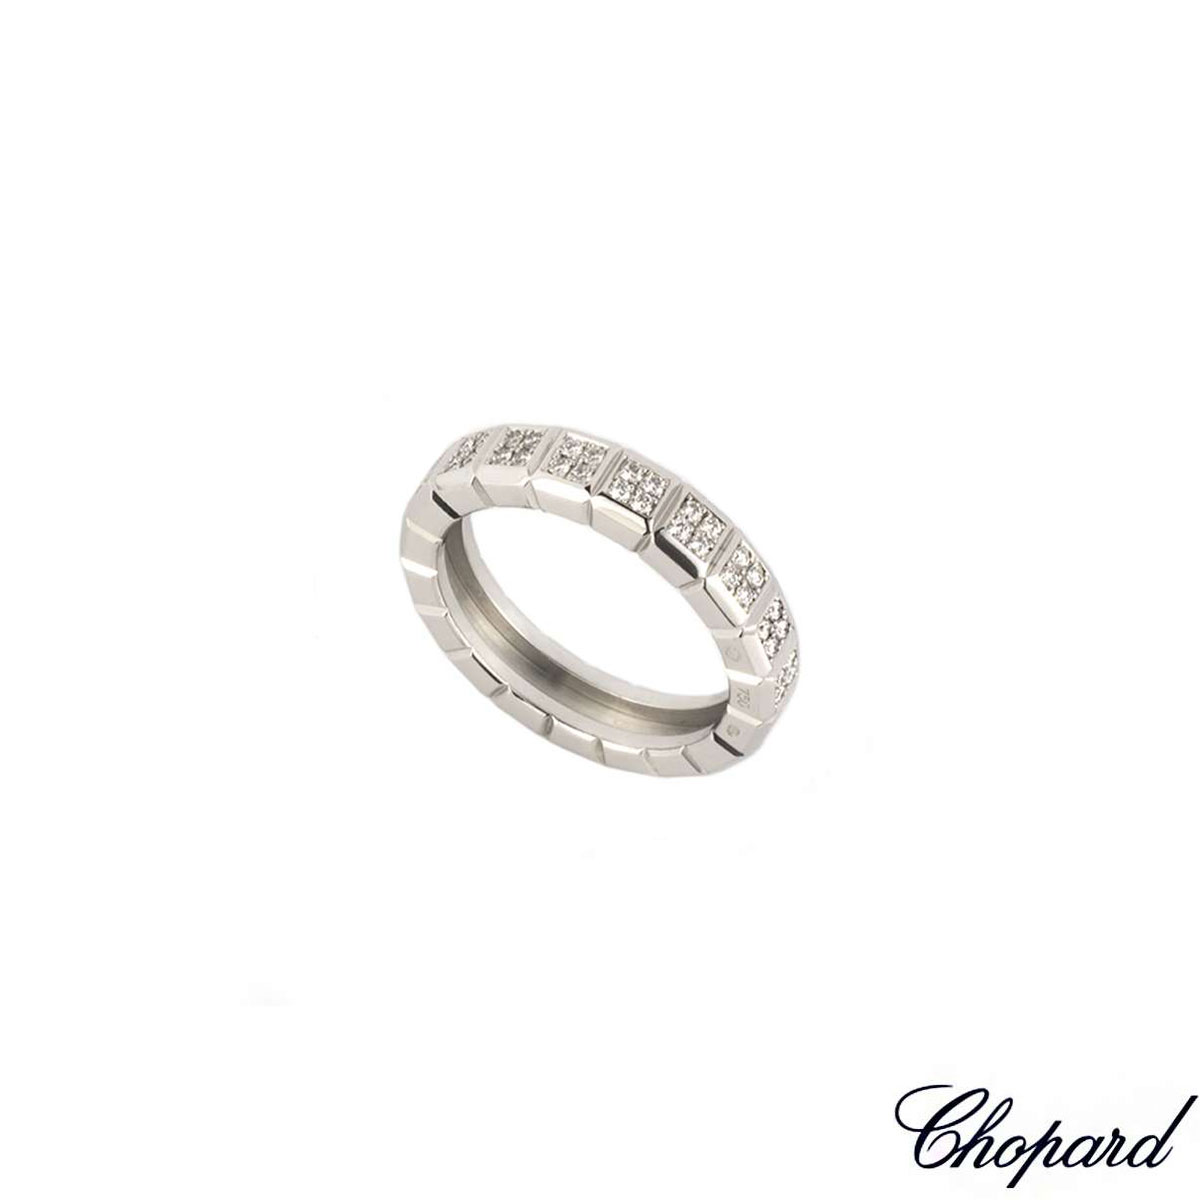 Chopard White Gold Diamond Ice Cube Ring 82/6815-1110